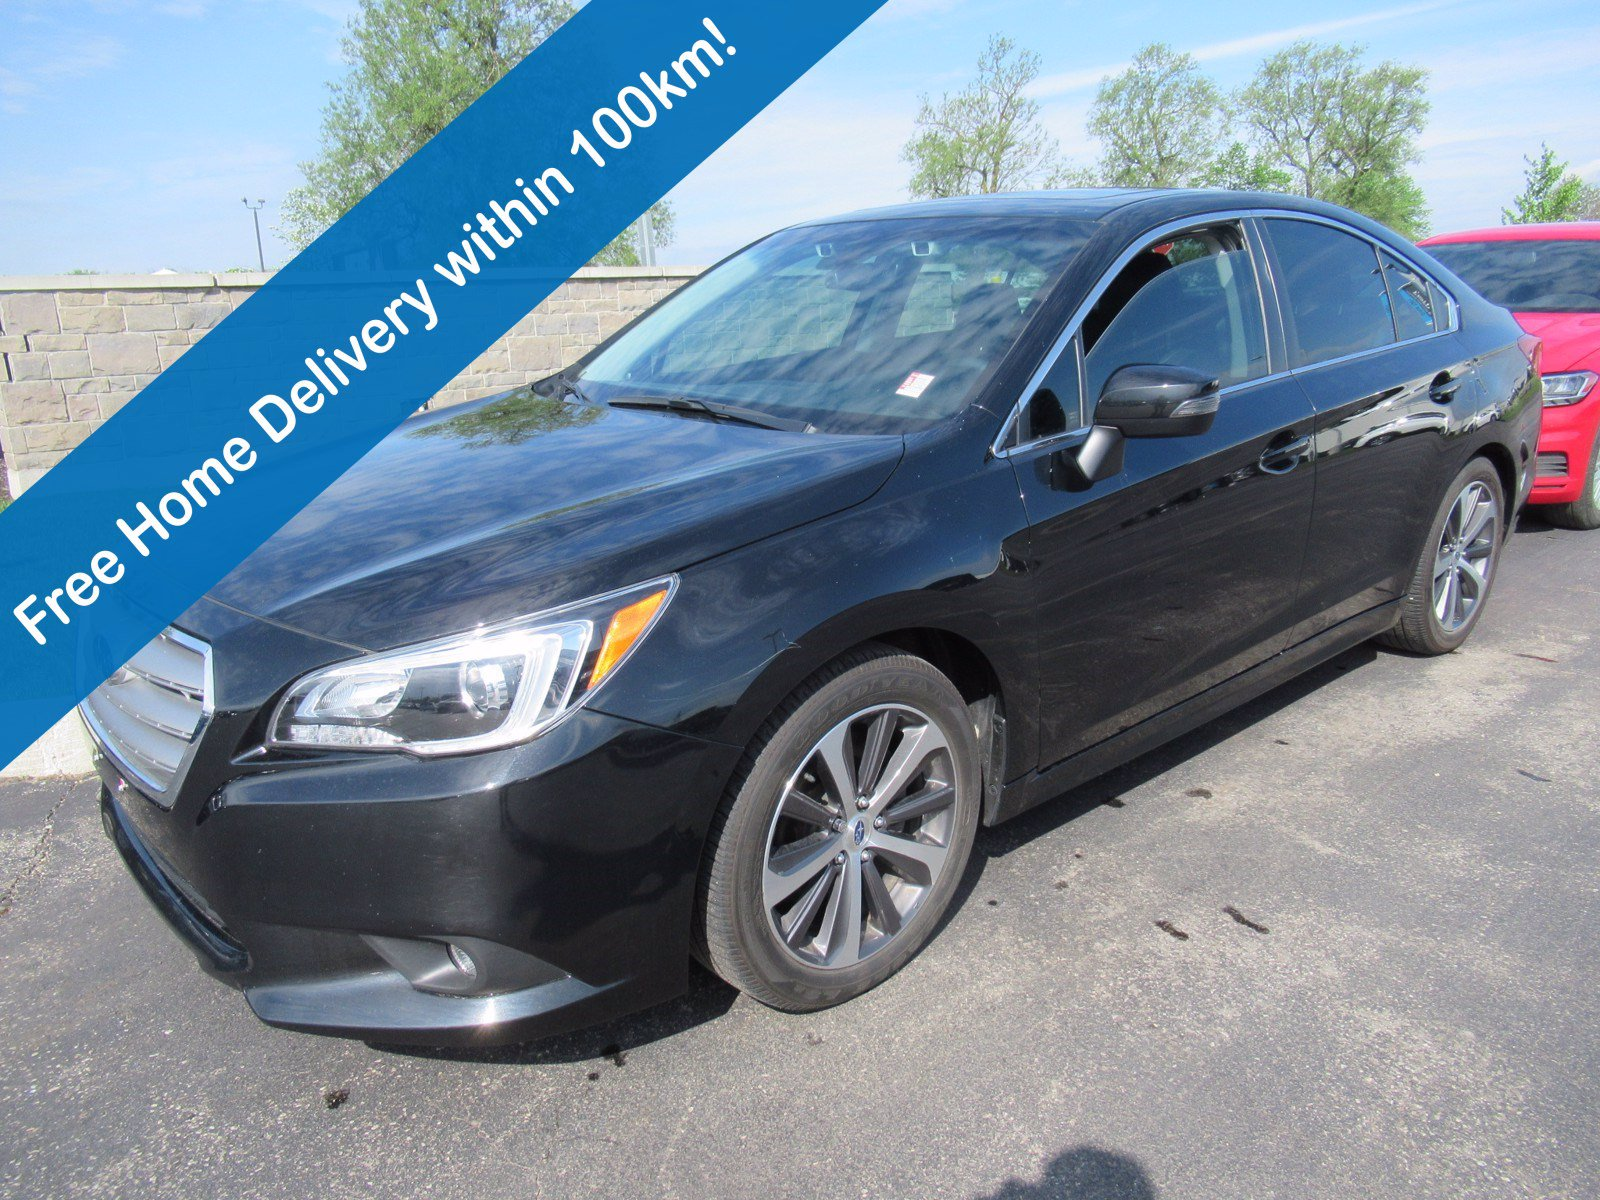 Certified Pre-Owned 2017 Subaru Legacy 2.5i AWD w/Limited & Tech Pkg! Sunroof, Leather, Navigation, Blind Spot Monitor, Rear Camera & More!